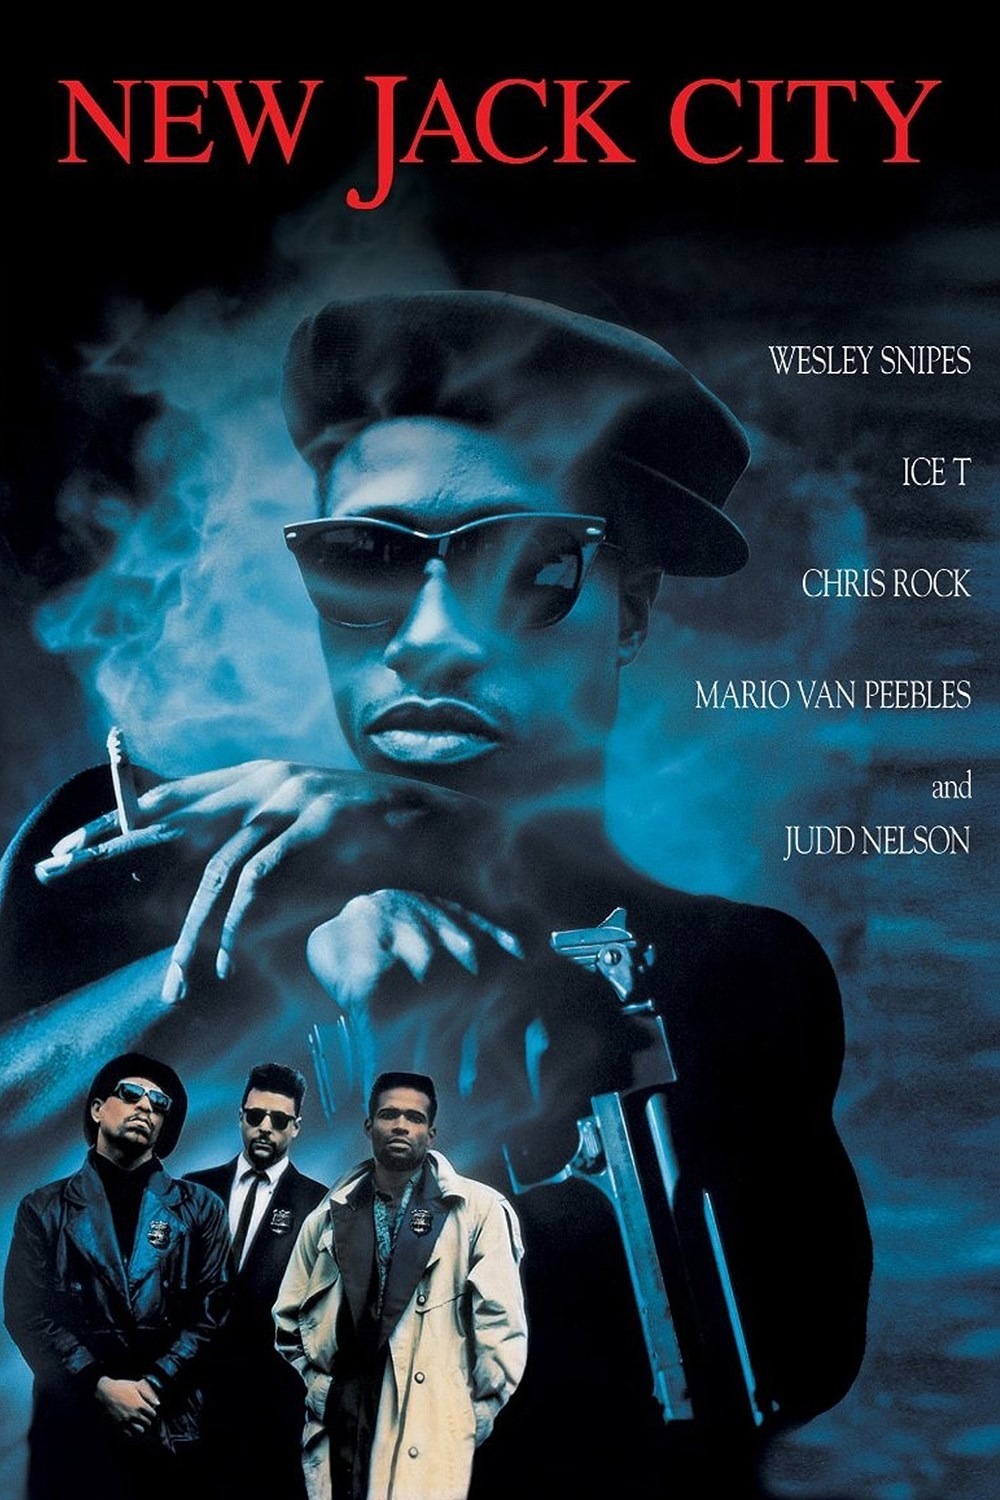 The Source |Today In Hip Hop History: Cult Classic Film 'New Jack City' Premiered In Theaters 30 Years Ago